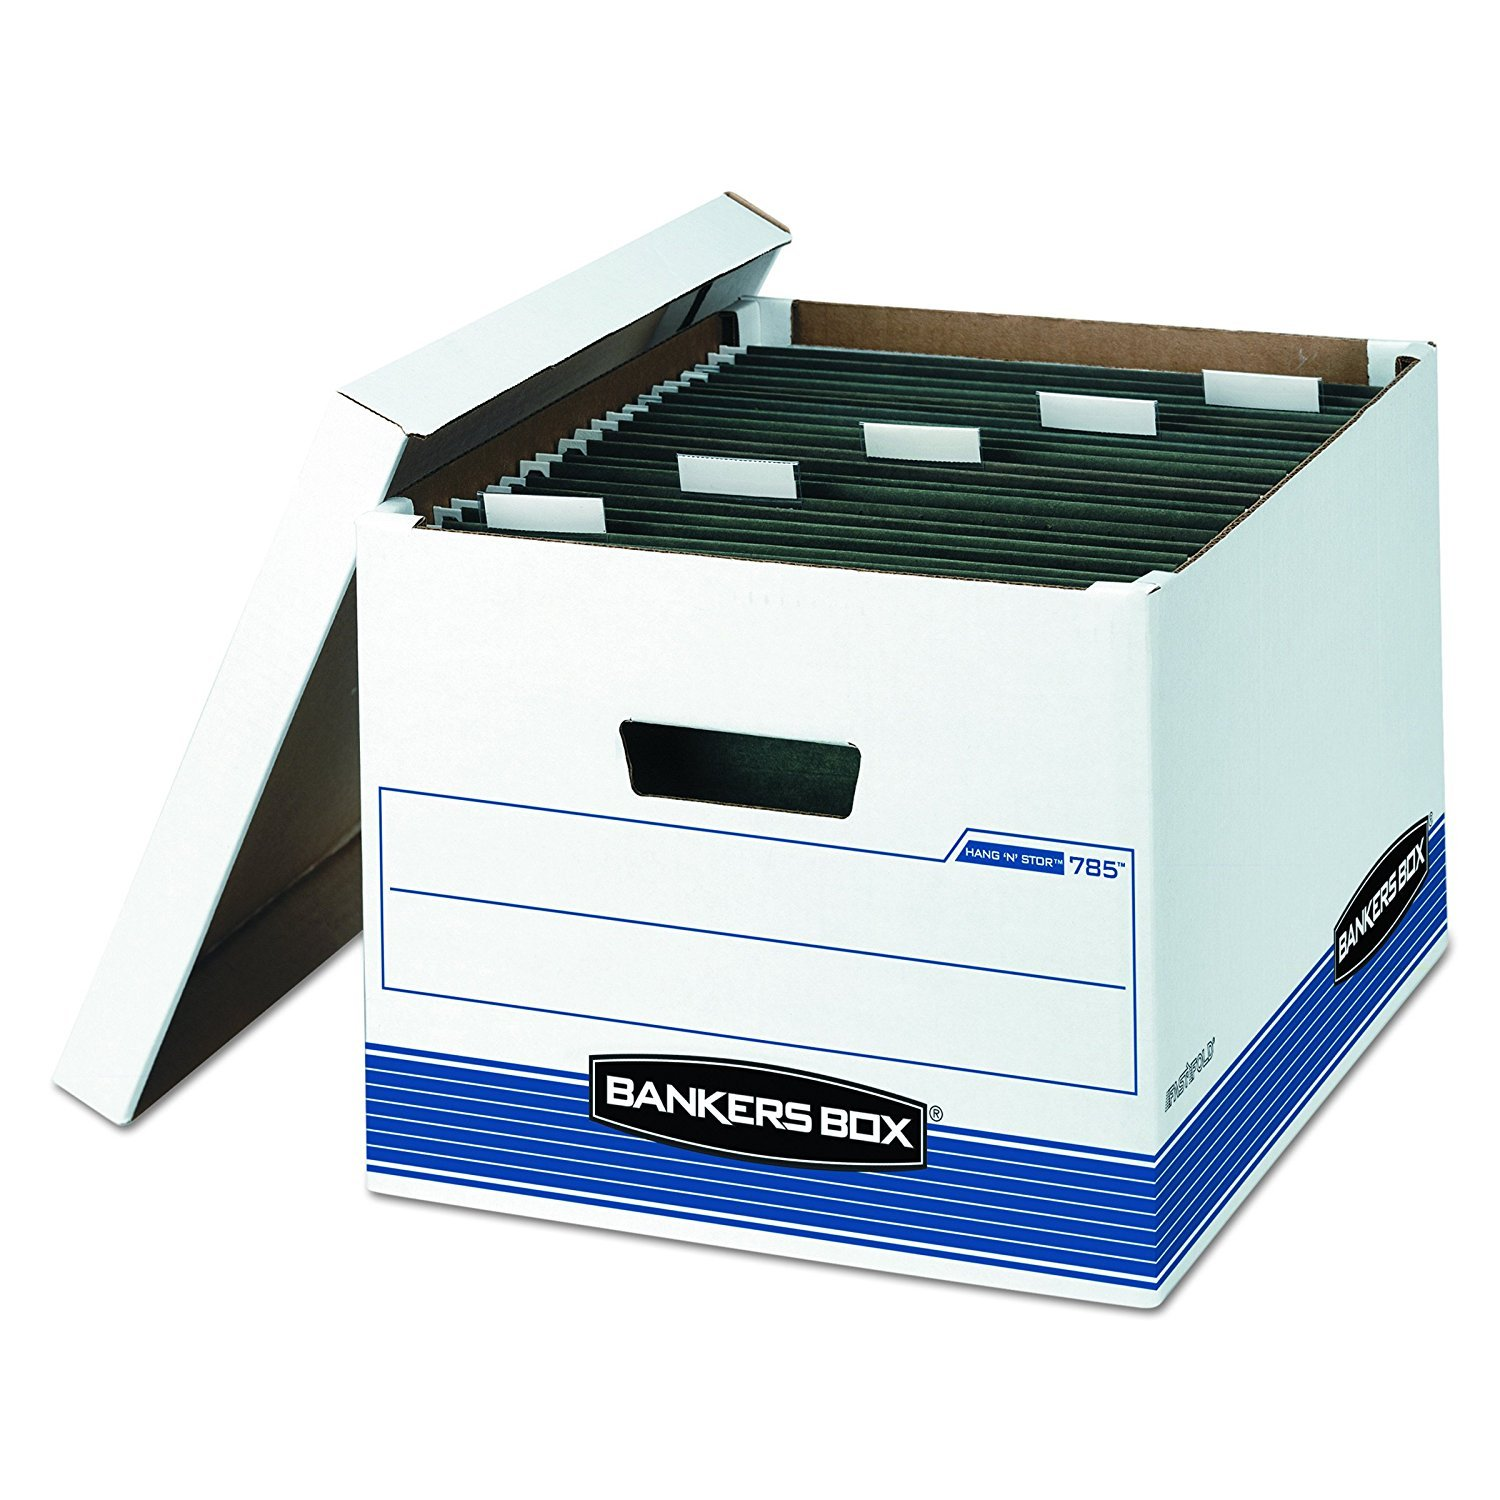 Bankers Box 00785 HANG'N'STOR Storage Box, Legal/Letter, Lift-off Lid, White/Blue (Case of 4) (Case of 20)